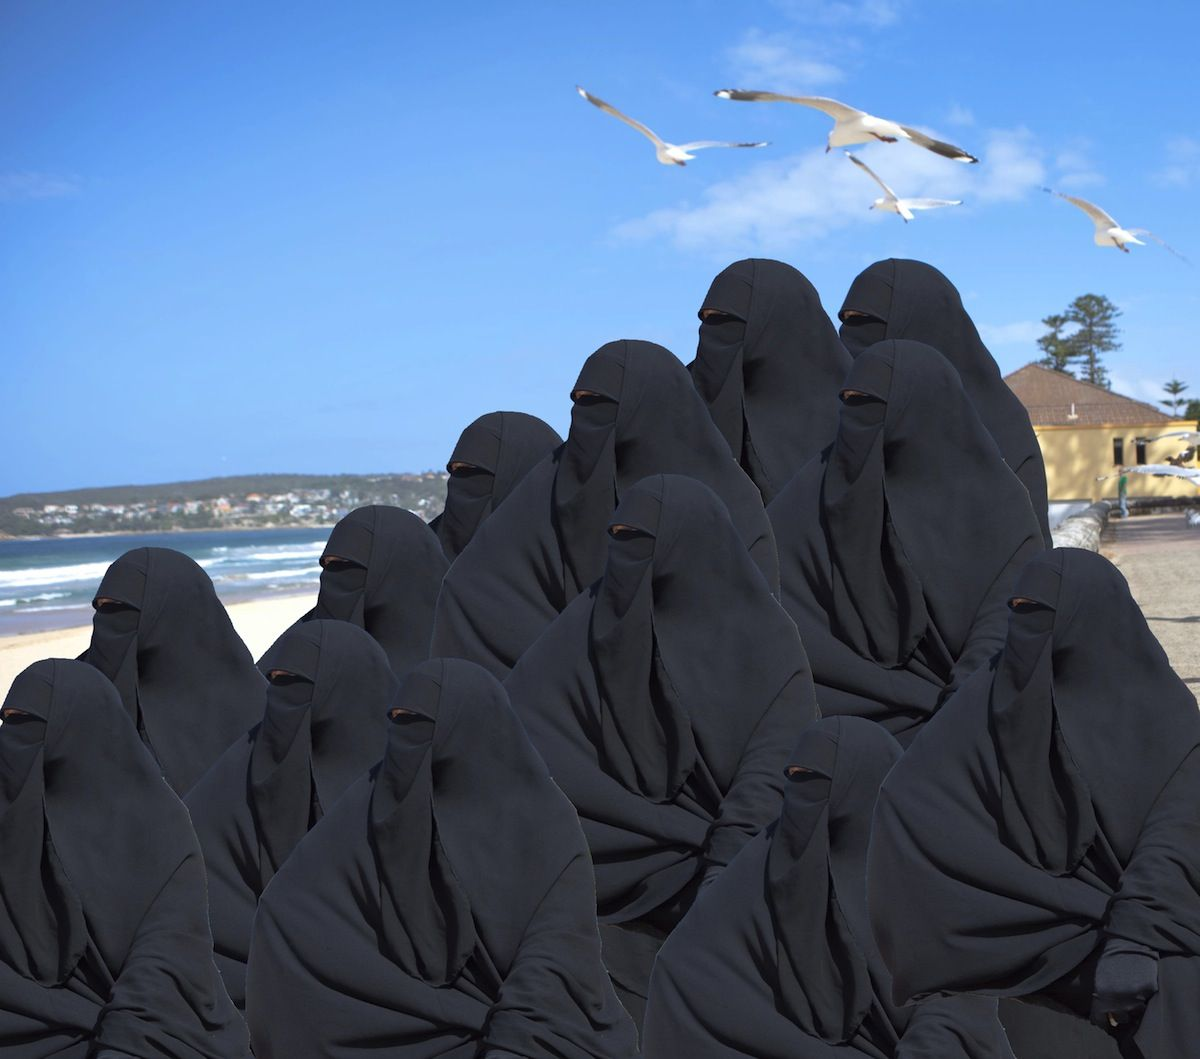 Muslim women at the beach in burkas remarkable